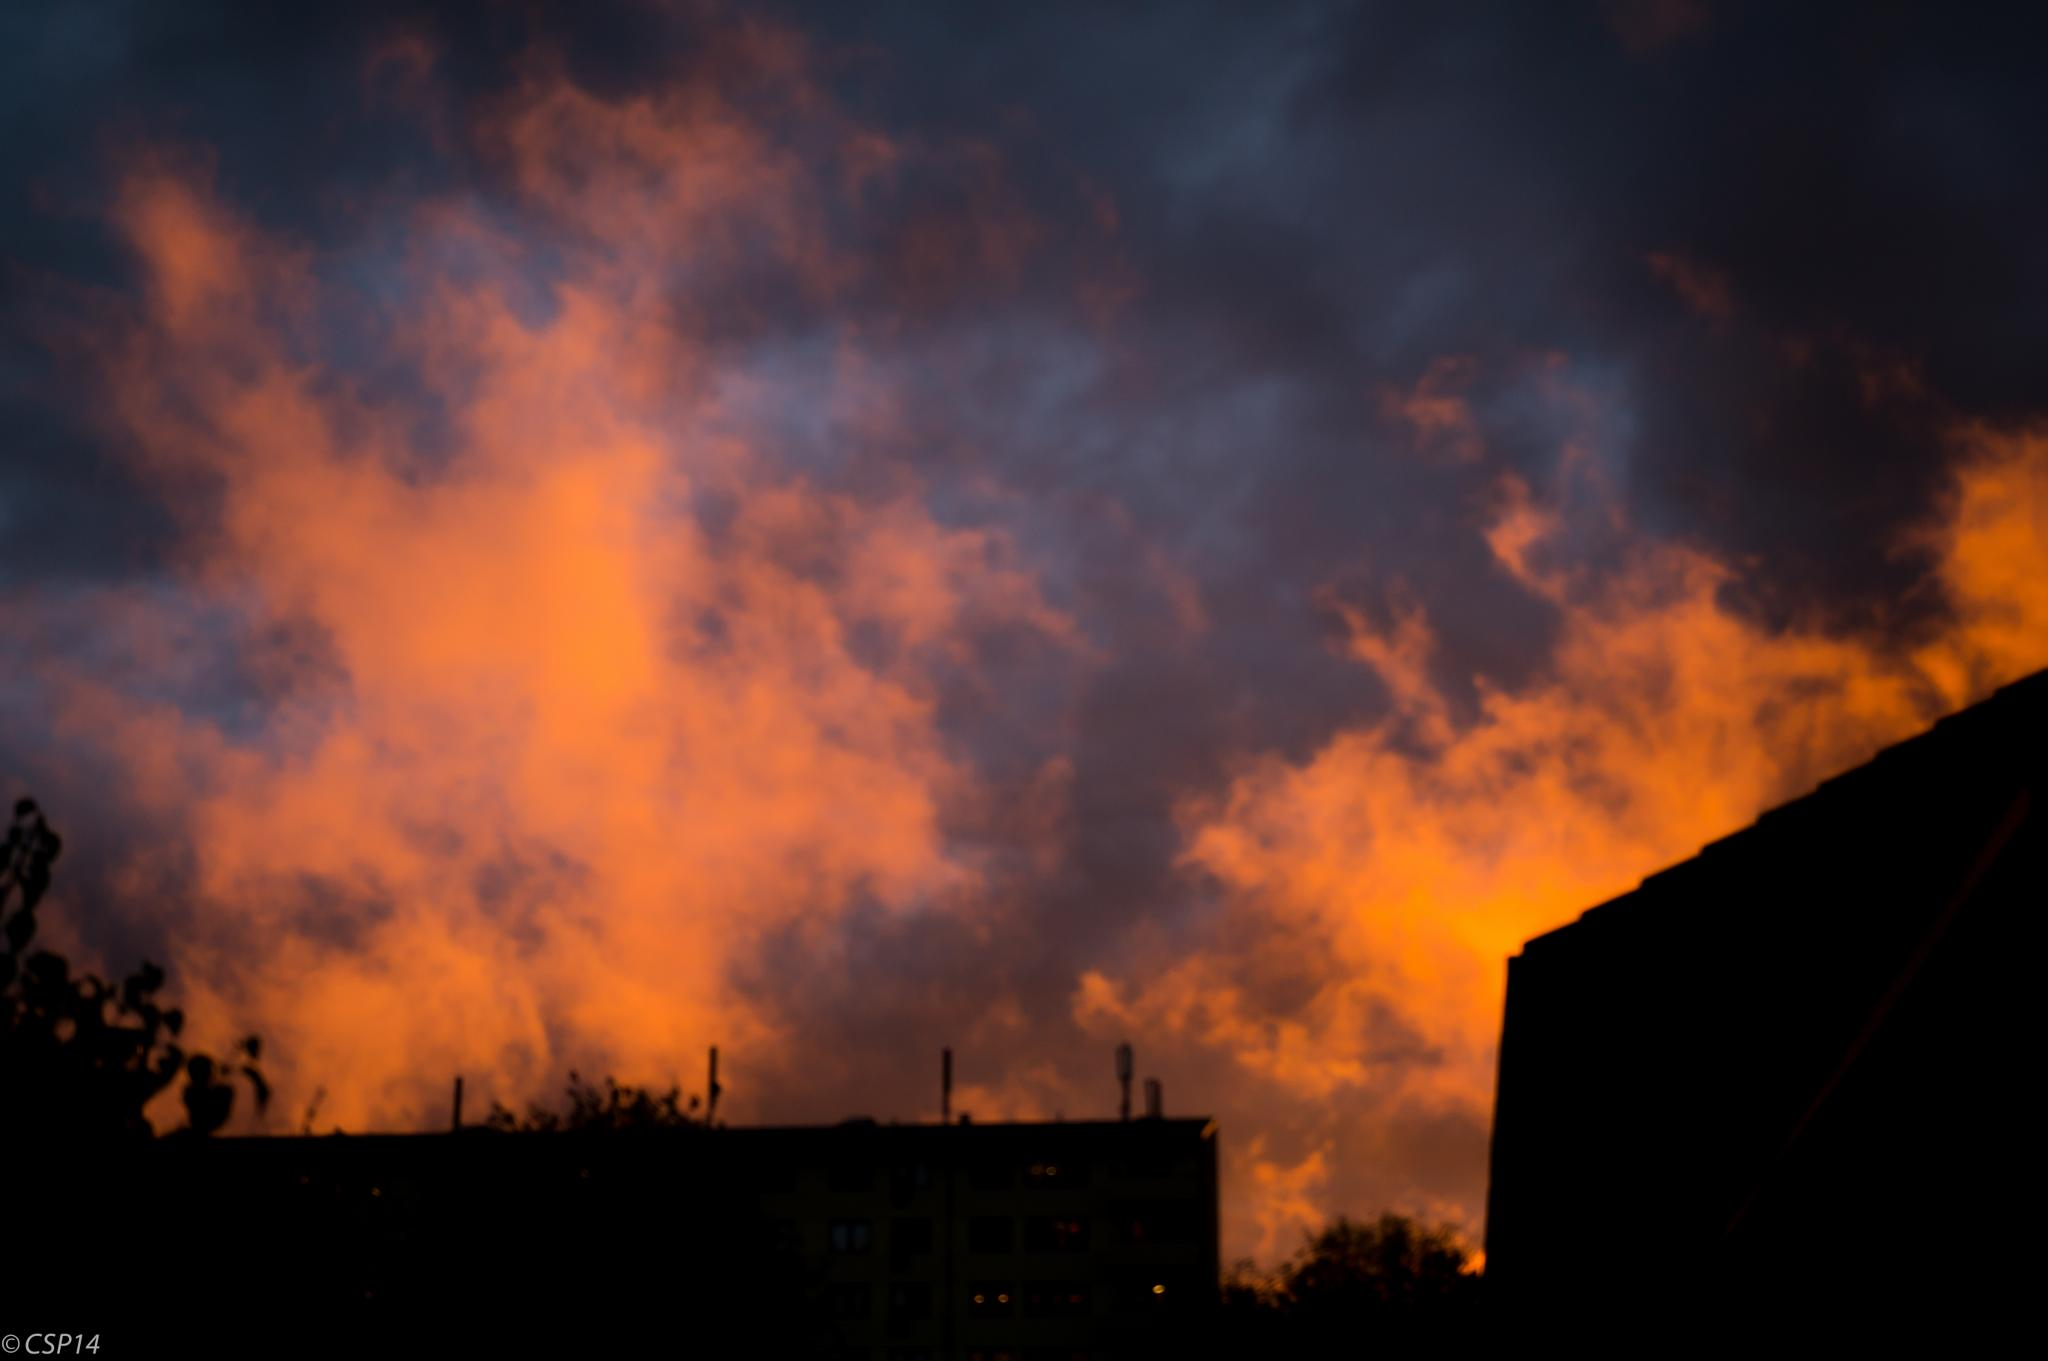 And two minute it stopped raining, the sky went on fire before it turned dark! by QuestForLight&LAS